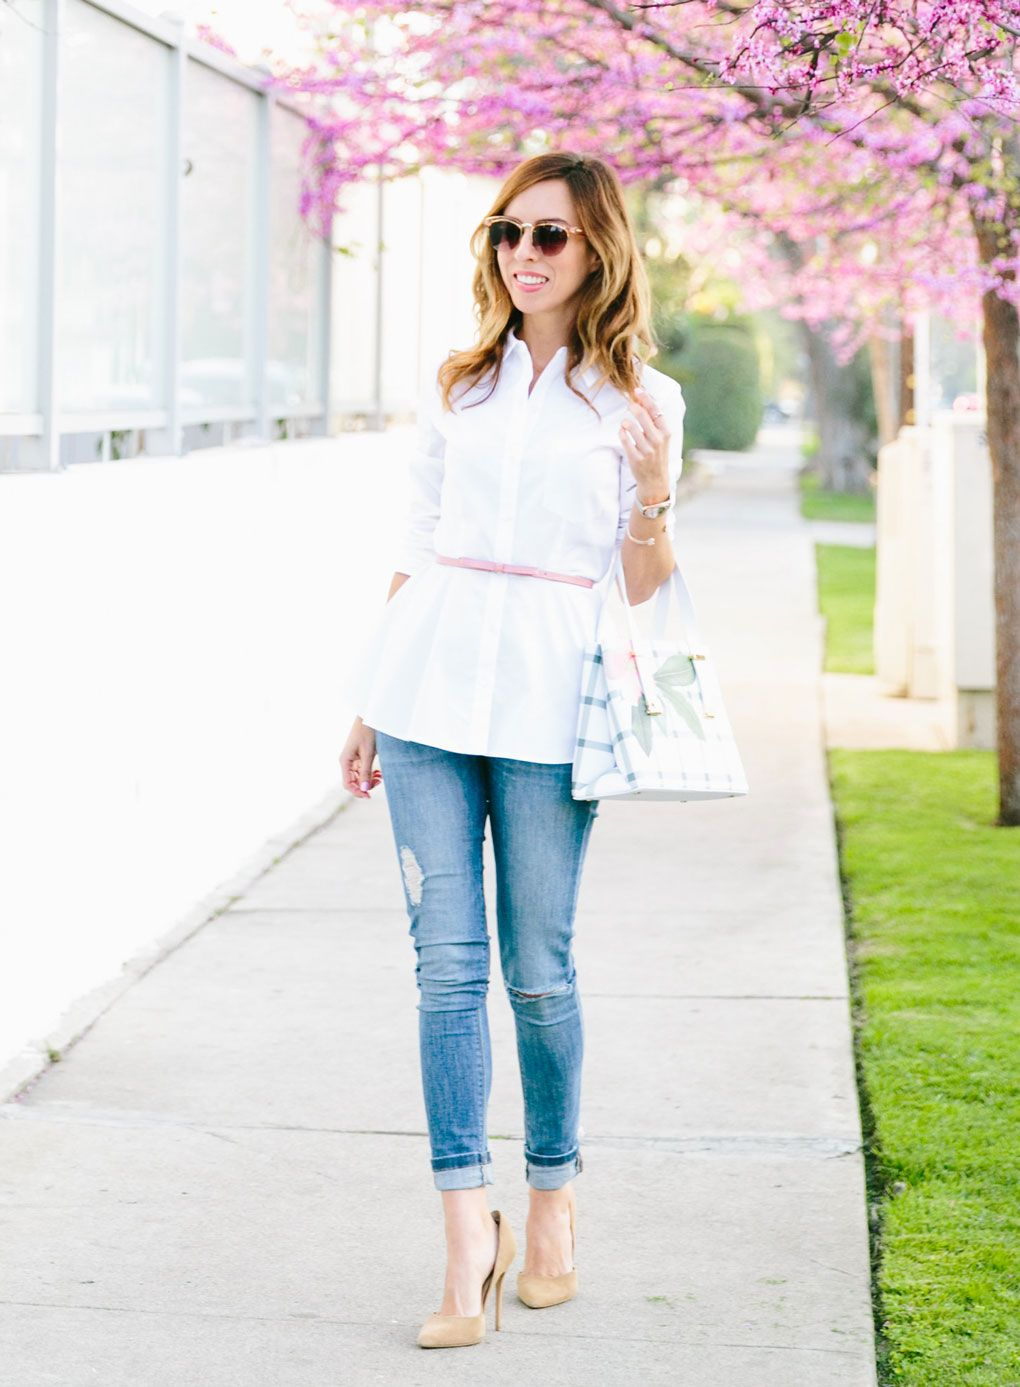 Sydne Style shows how to wear skinny jeans for spring